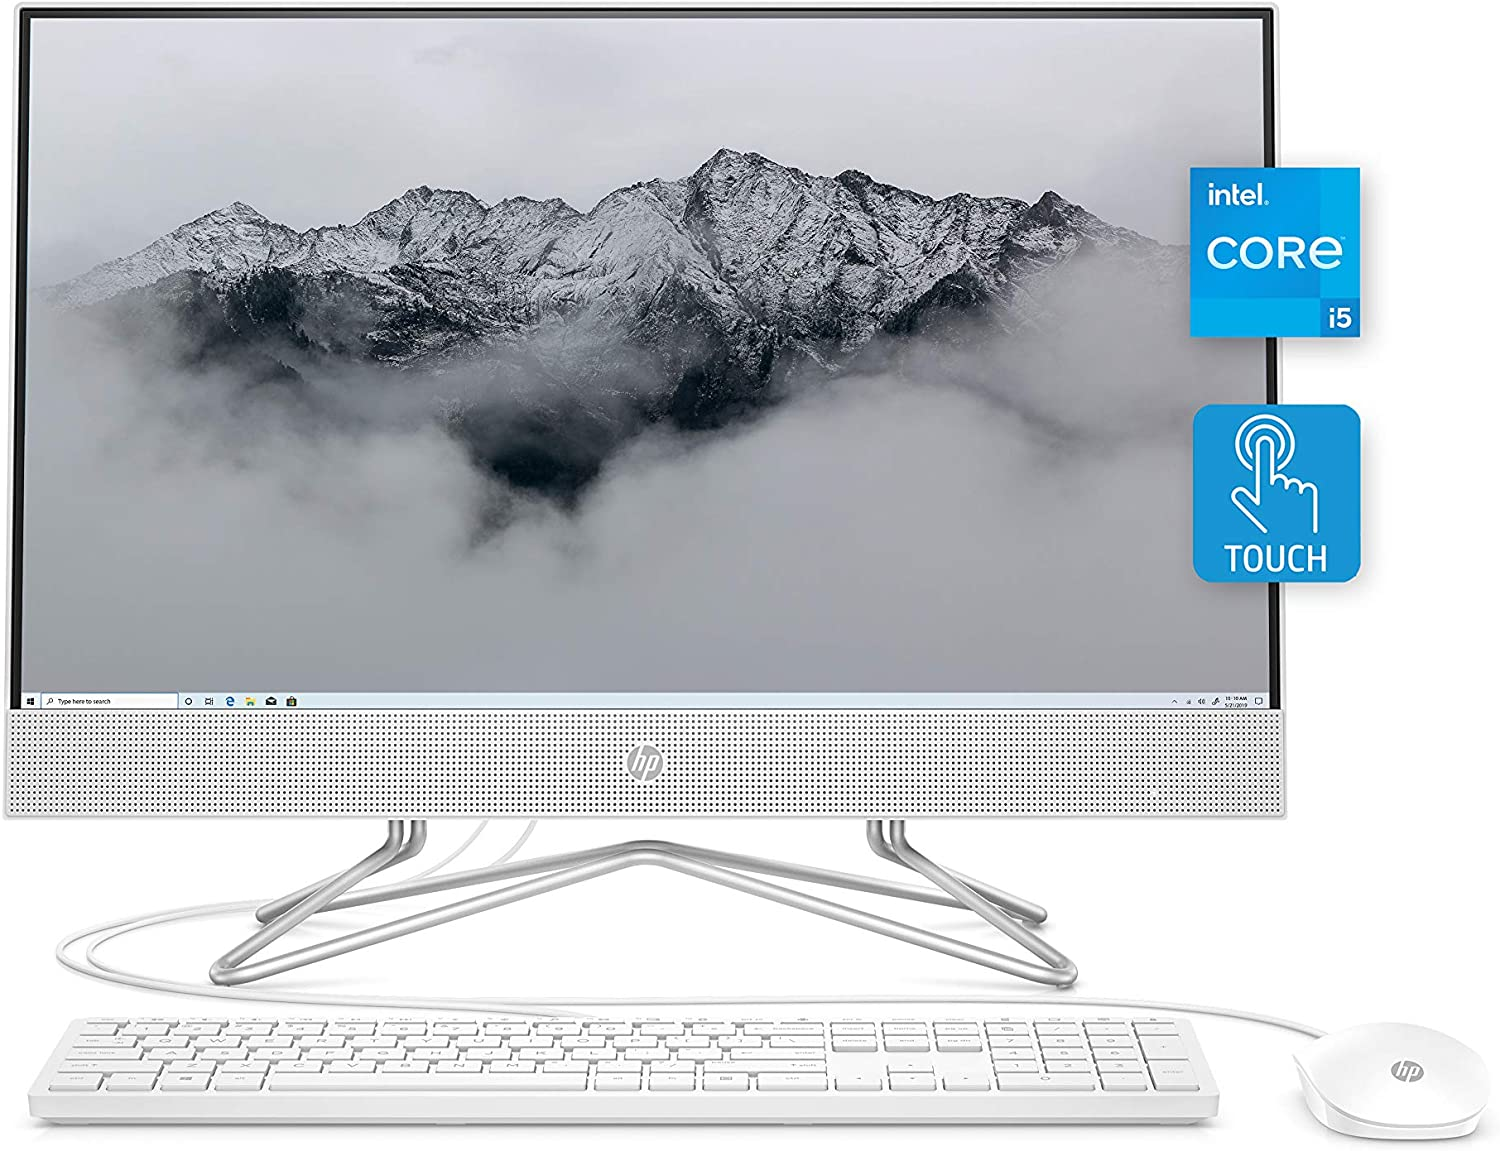 """HP All-in-One Desktop PC, 11th Gen Intel Core i5-1135G7 Processor, 8 GB RAM, 512 GB SSD Storage, Full HD 23.8"""" Touchscreen, Windows 10 Home, Remote Work Ready, Mouse and Keyboard (24-df1270, 2021)"""